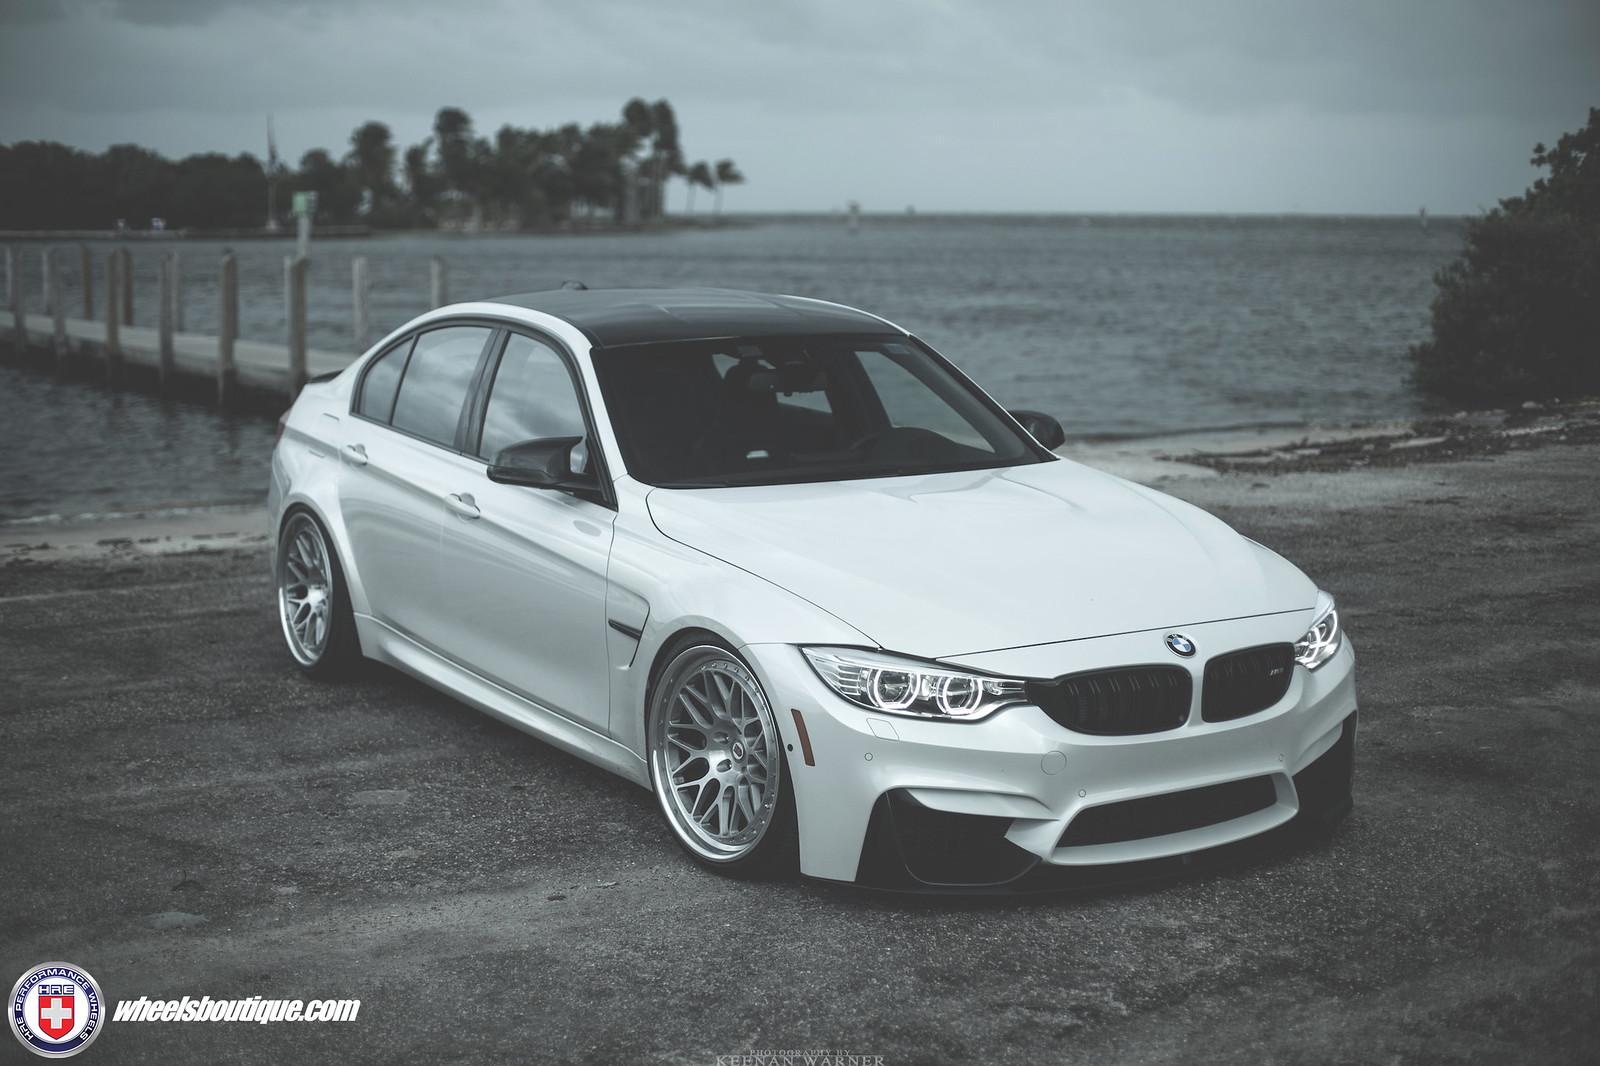 Pirelli P Zero Nero >> Wheels Boutique – BMW F80 M3 x HRE Classic 300 - BMW M5 Forum and M6 Forums